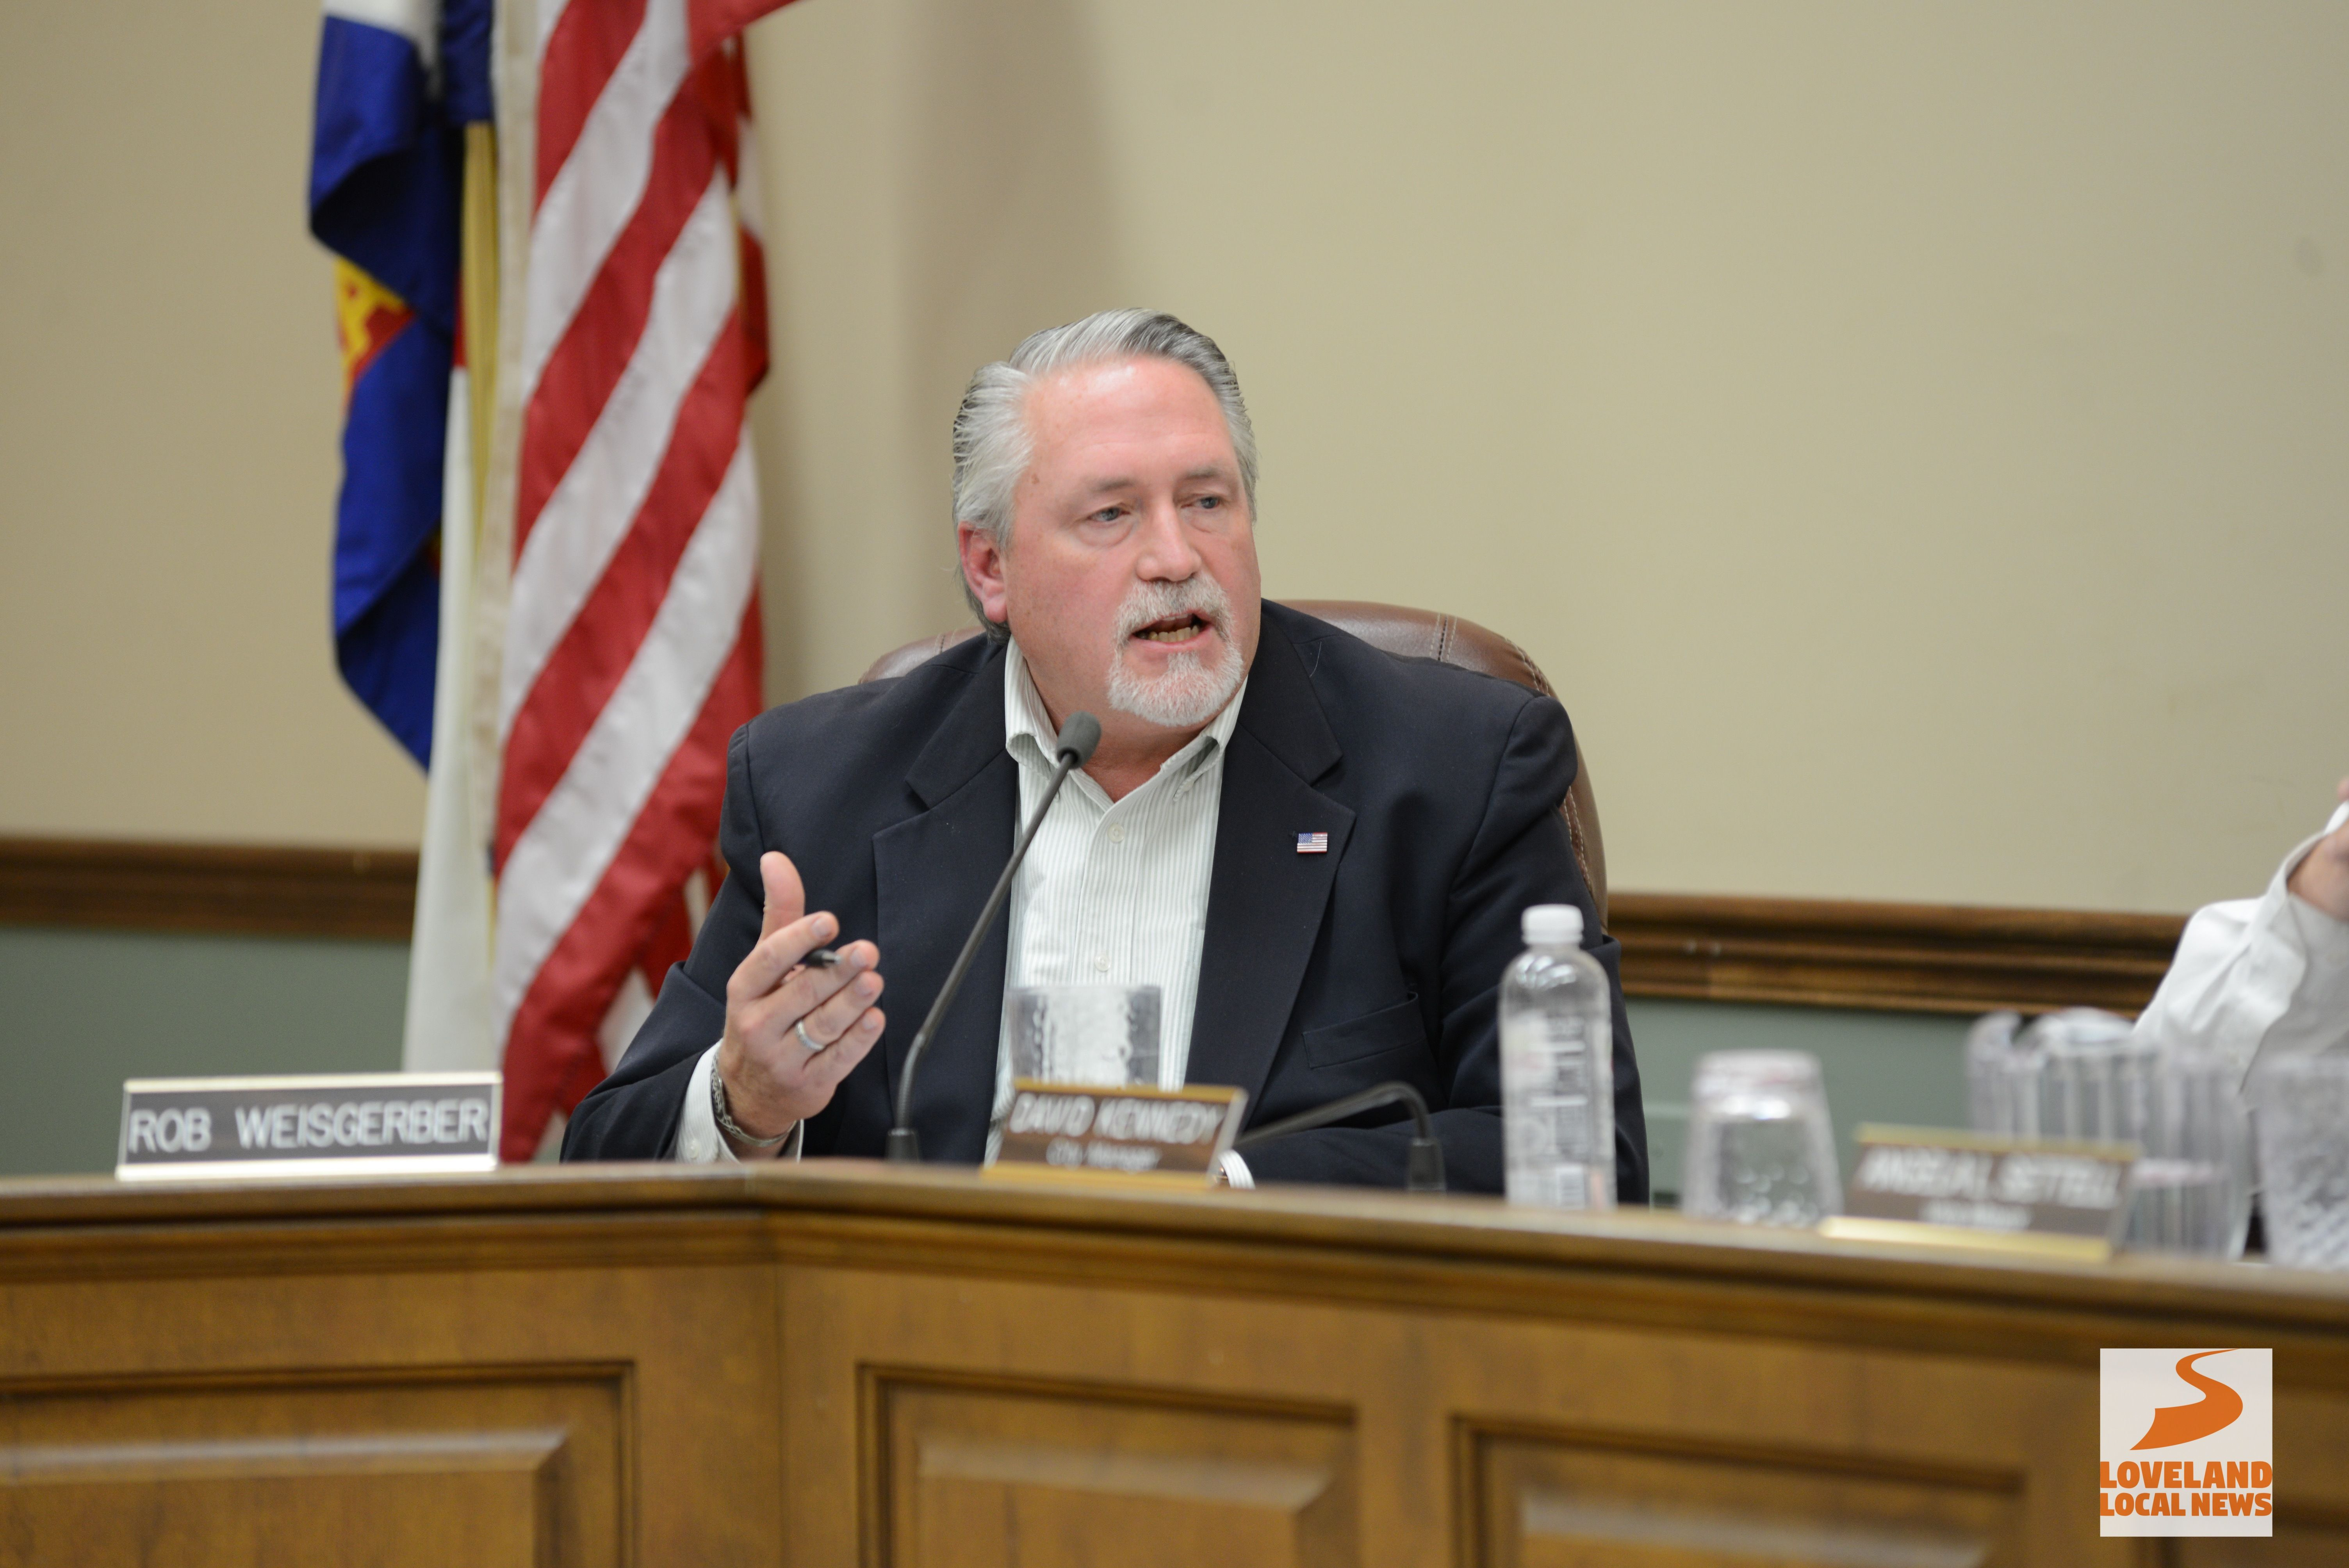 Current Vice Mayor Rob Weisgerber Is The Longest Serving Loveland